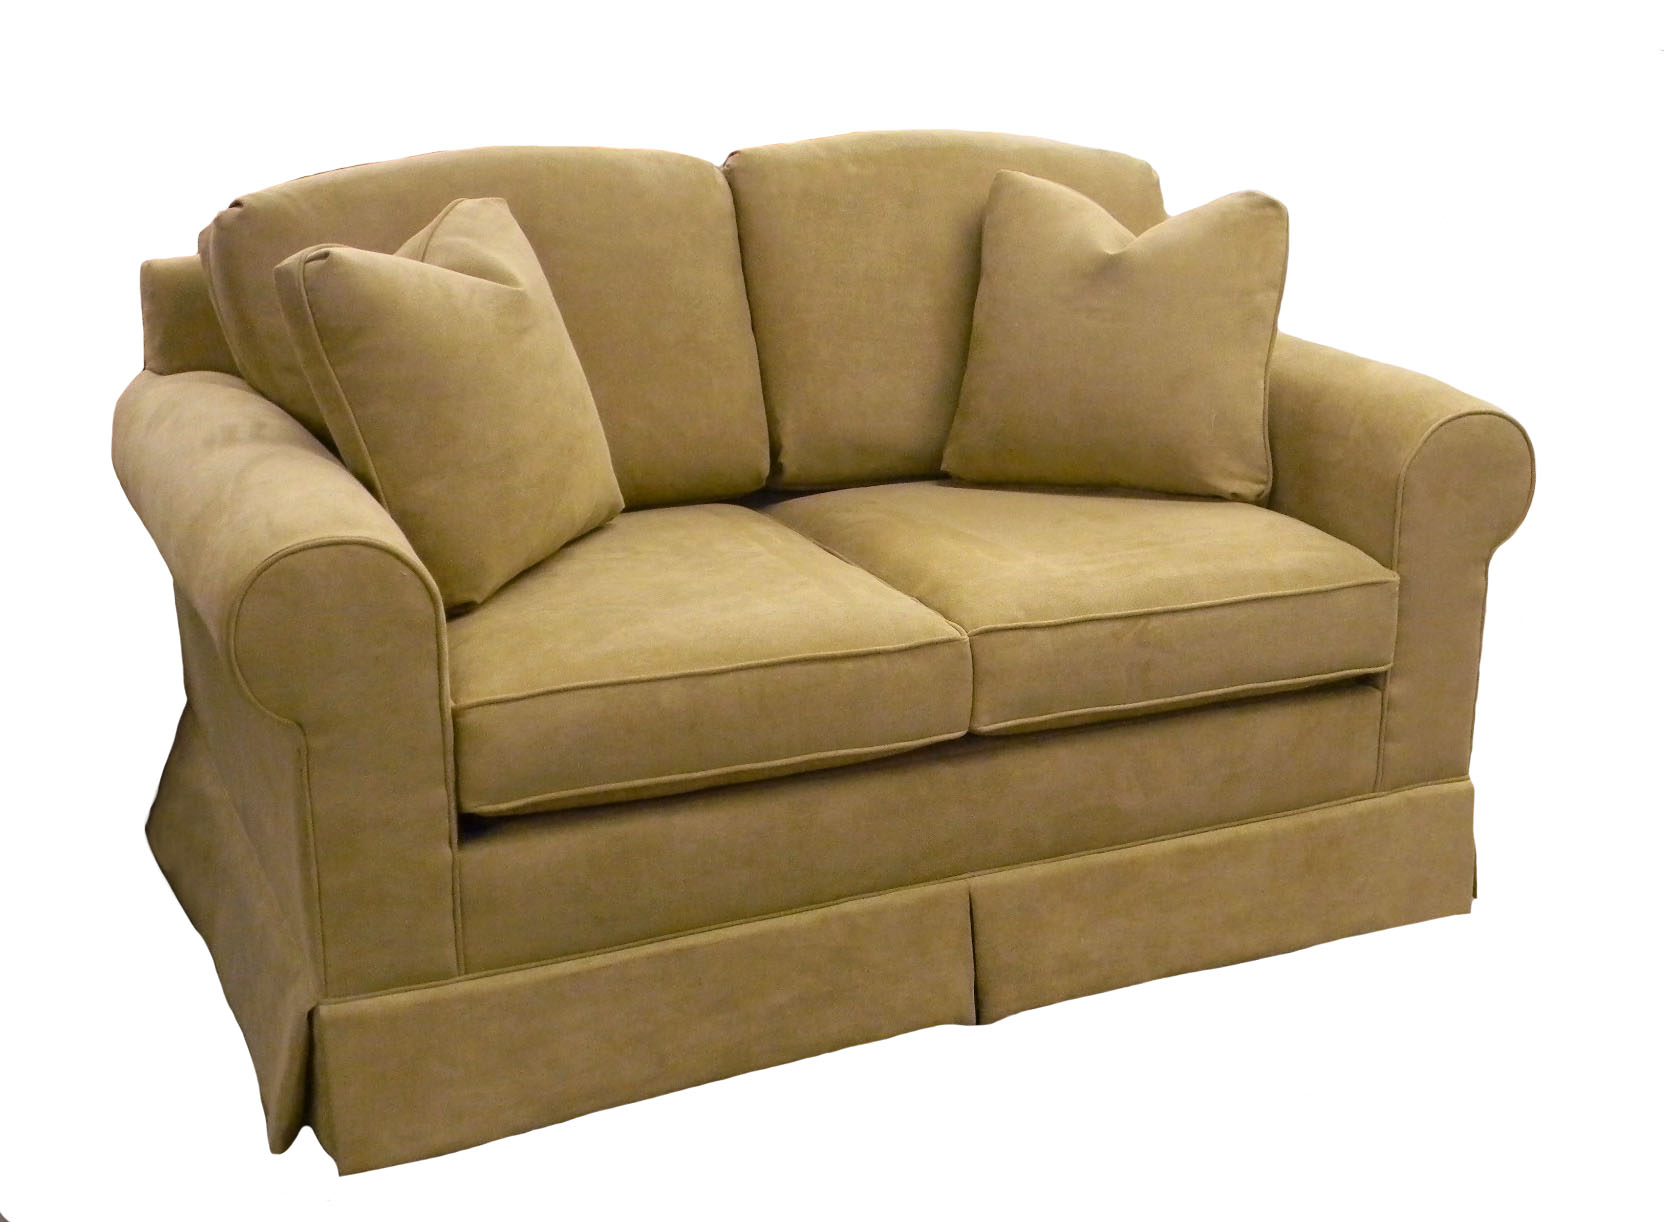 Hughes Twin Sleeper Sofa Chair Small Sleeper Couch